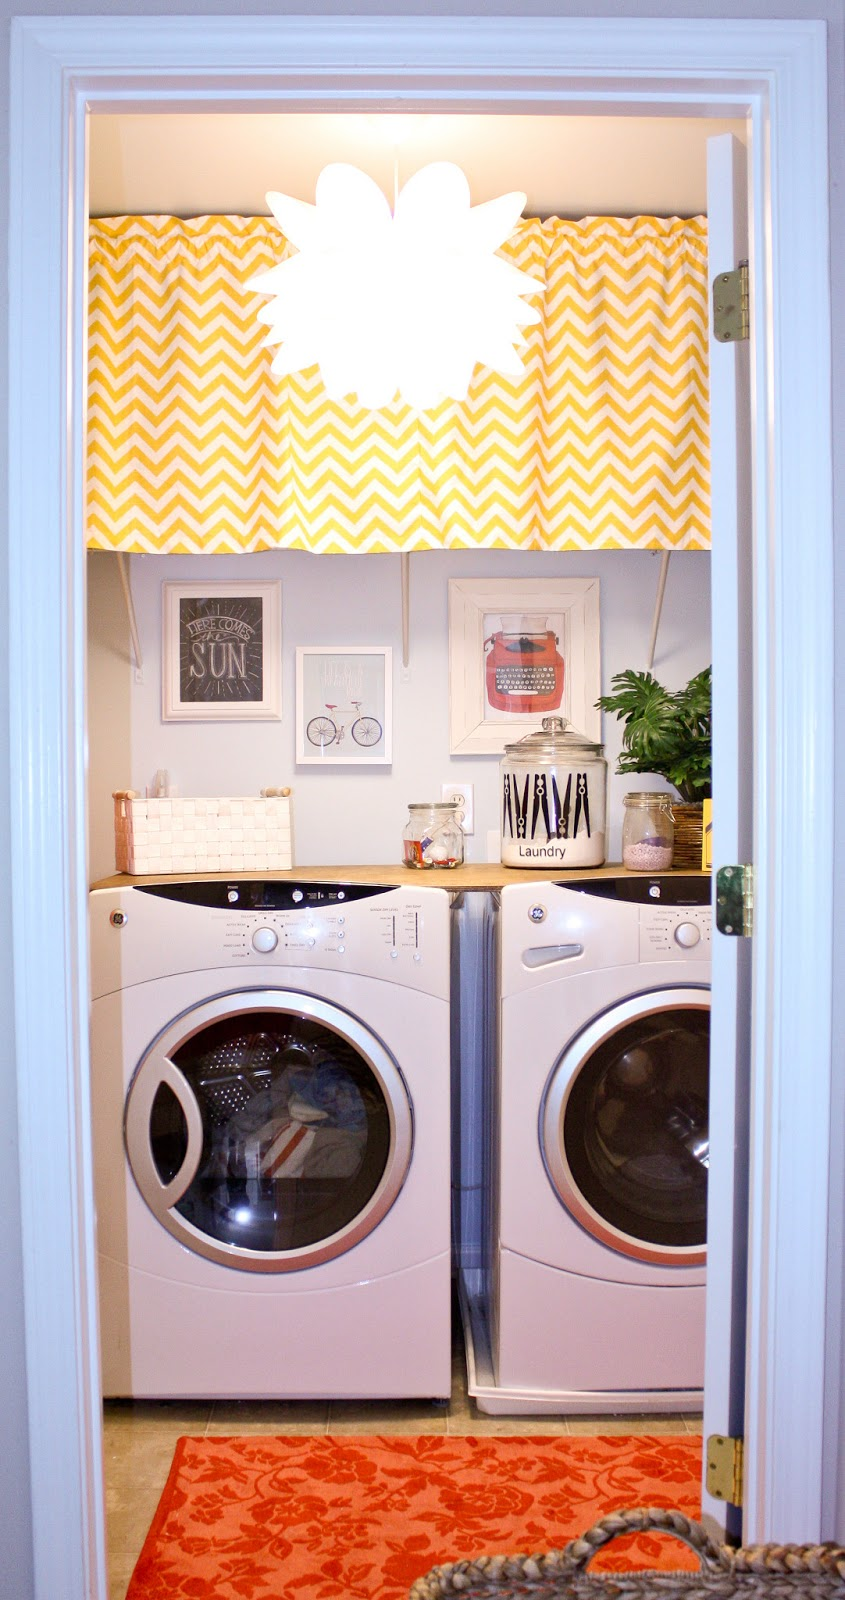 Hoot Designs - Laundry Room Makeover - Shanty 2 Chic